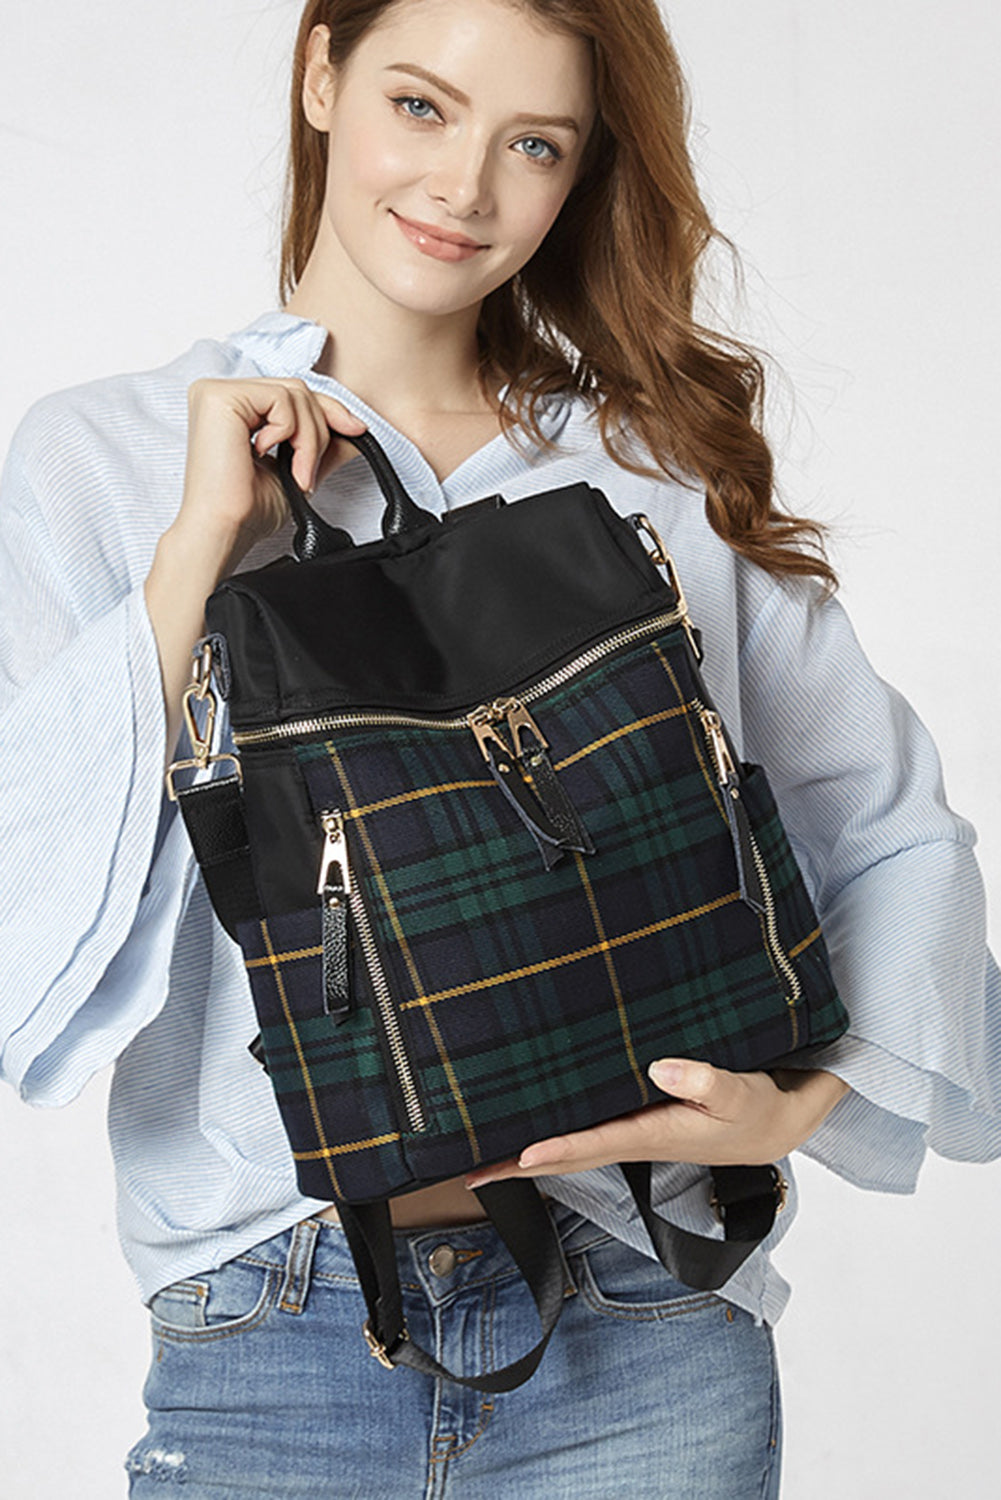 Green Plaid Backpack Handbag Bags Discount Designer Fashion Clothes Shoes Bags Women Men Kids Children Black Owned Business